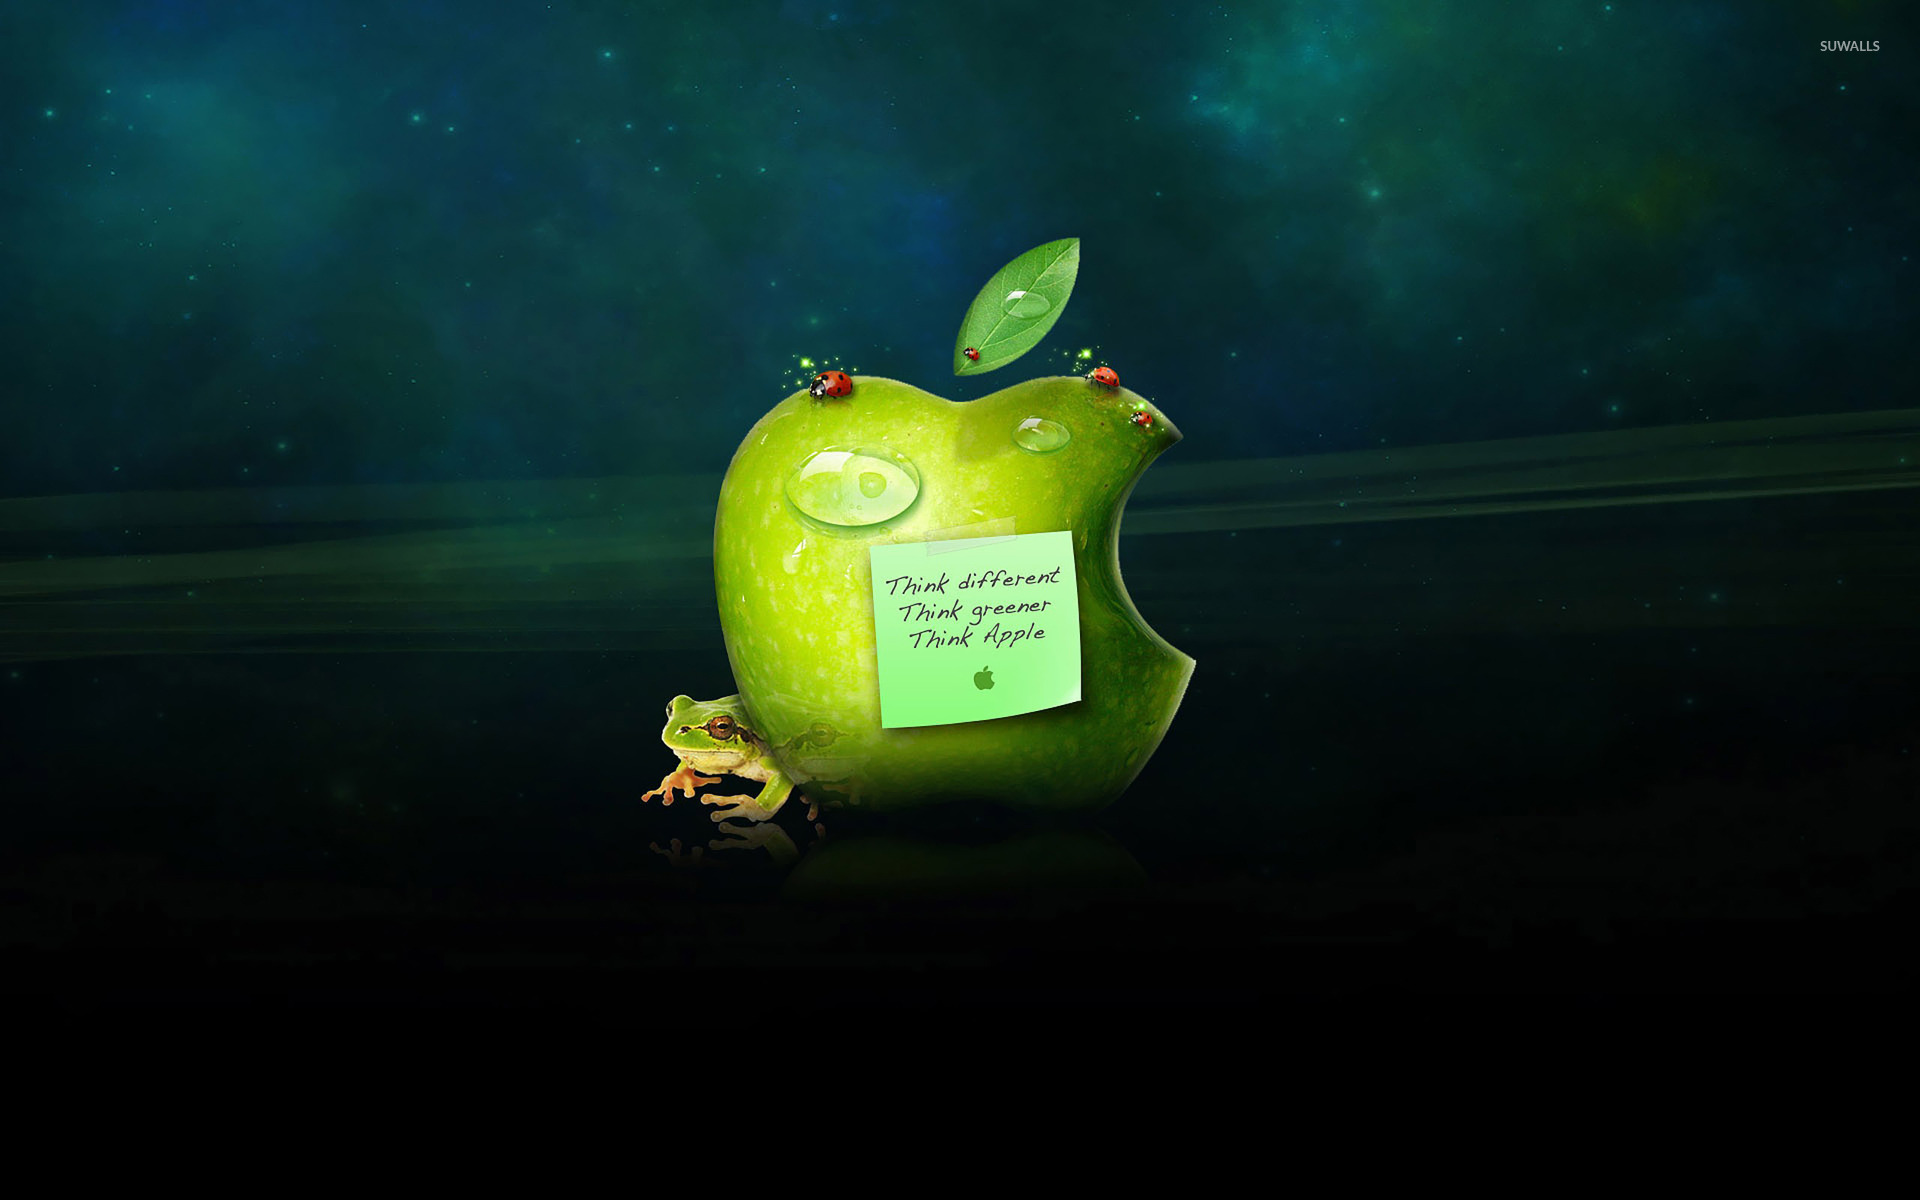 apple - think different wallpaper - computer wallpapers - #18098